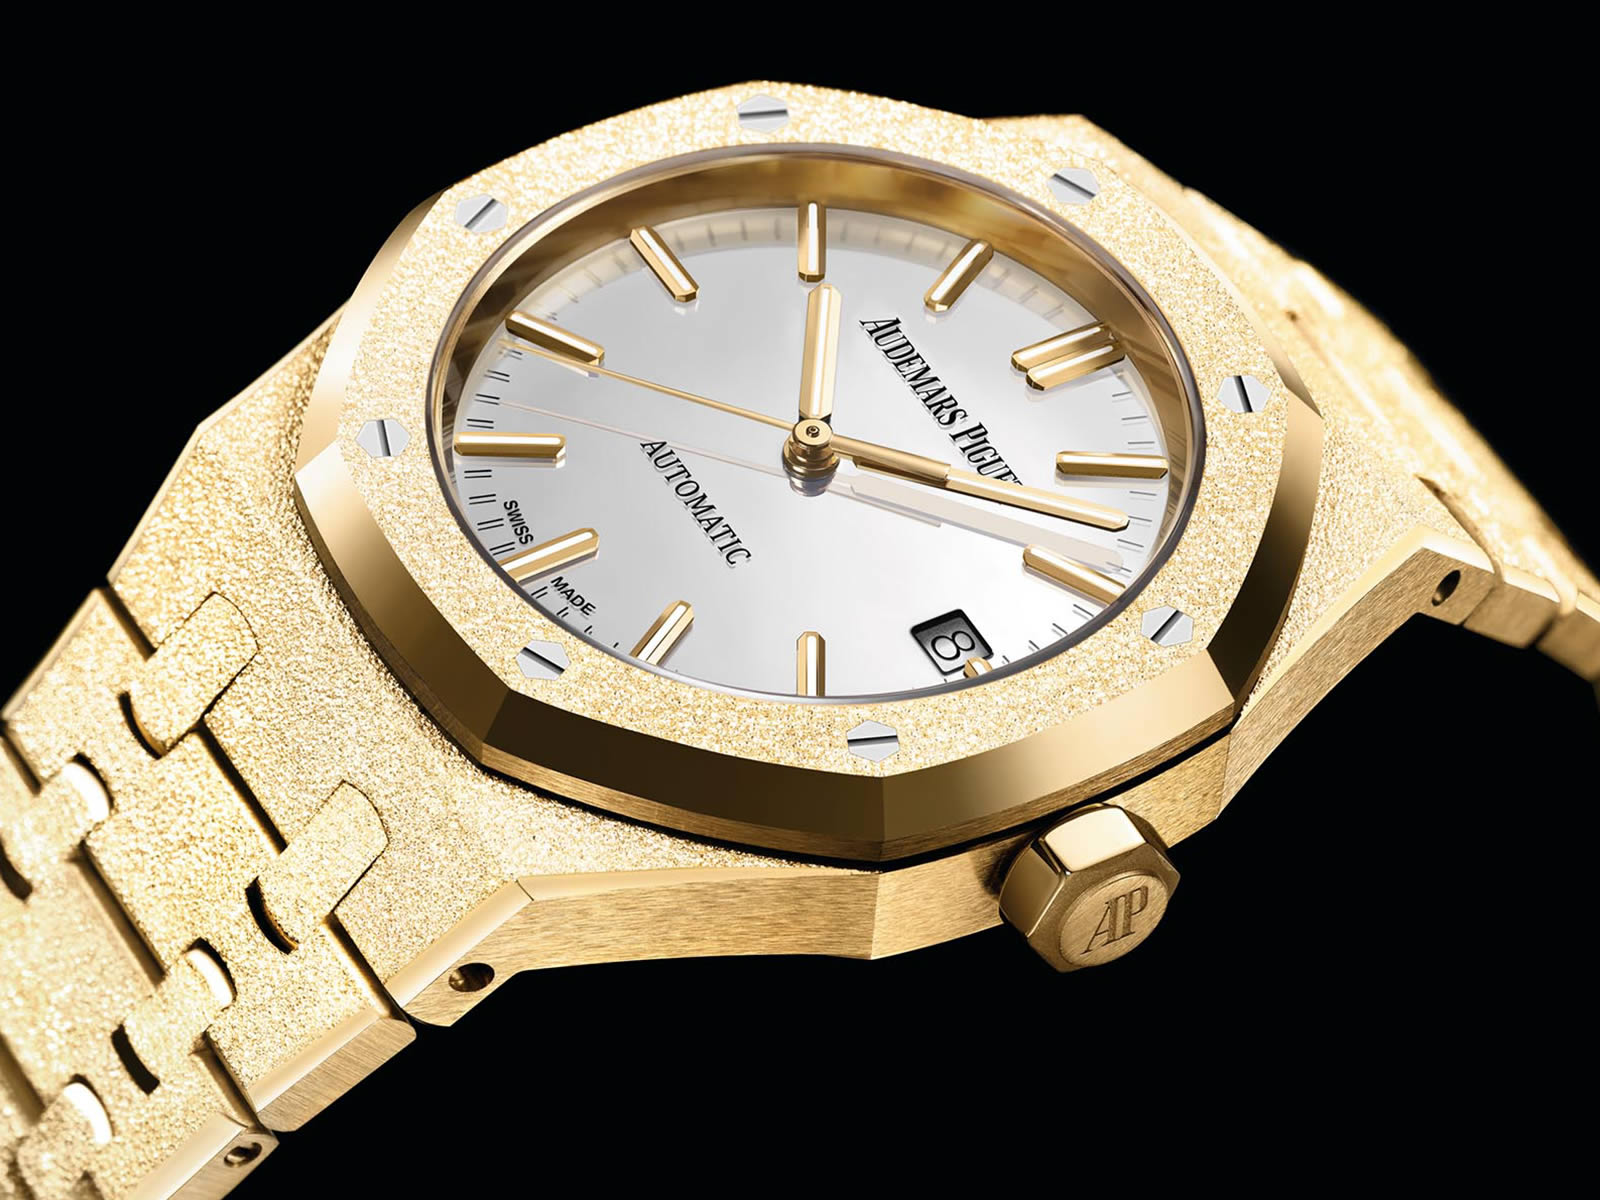 15454or-gg-1259or-03-audemars-piguet-royal-oak-carolina-bucci-limited-edition-11-.jpg